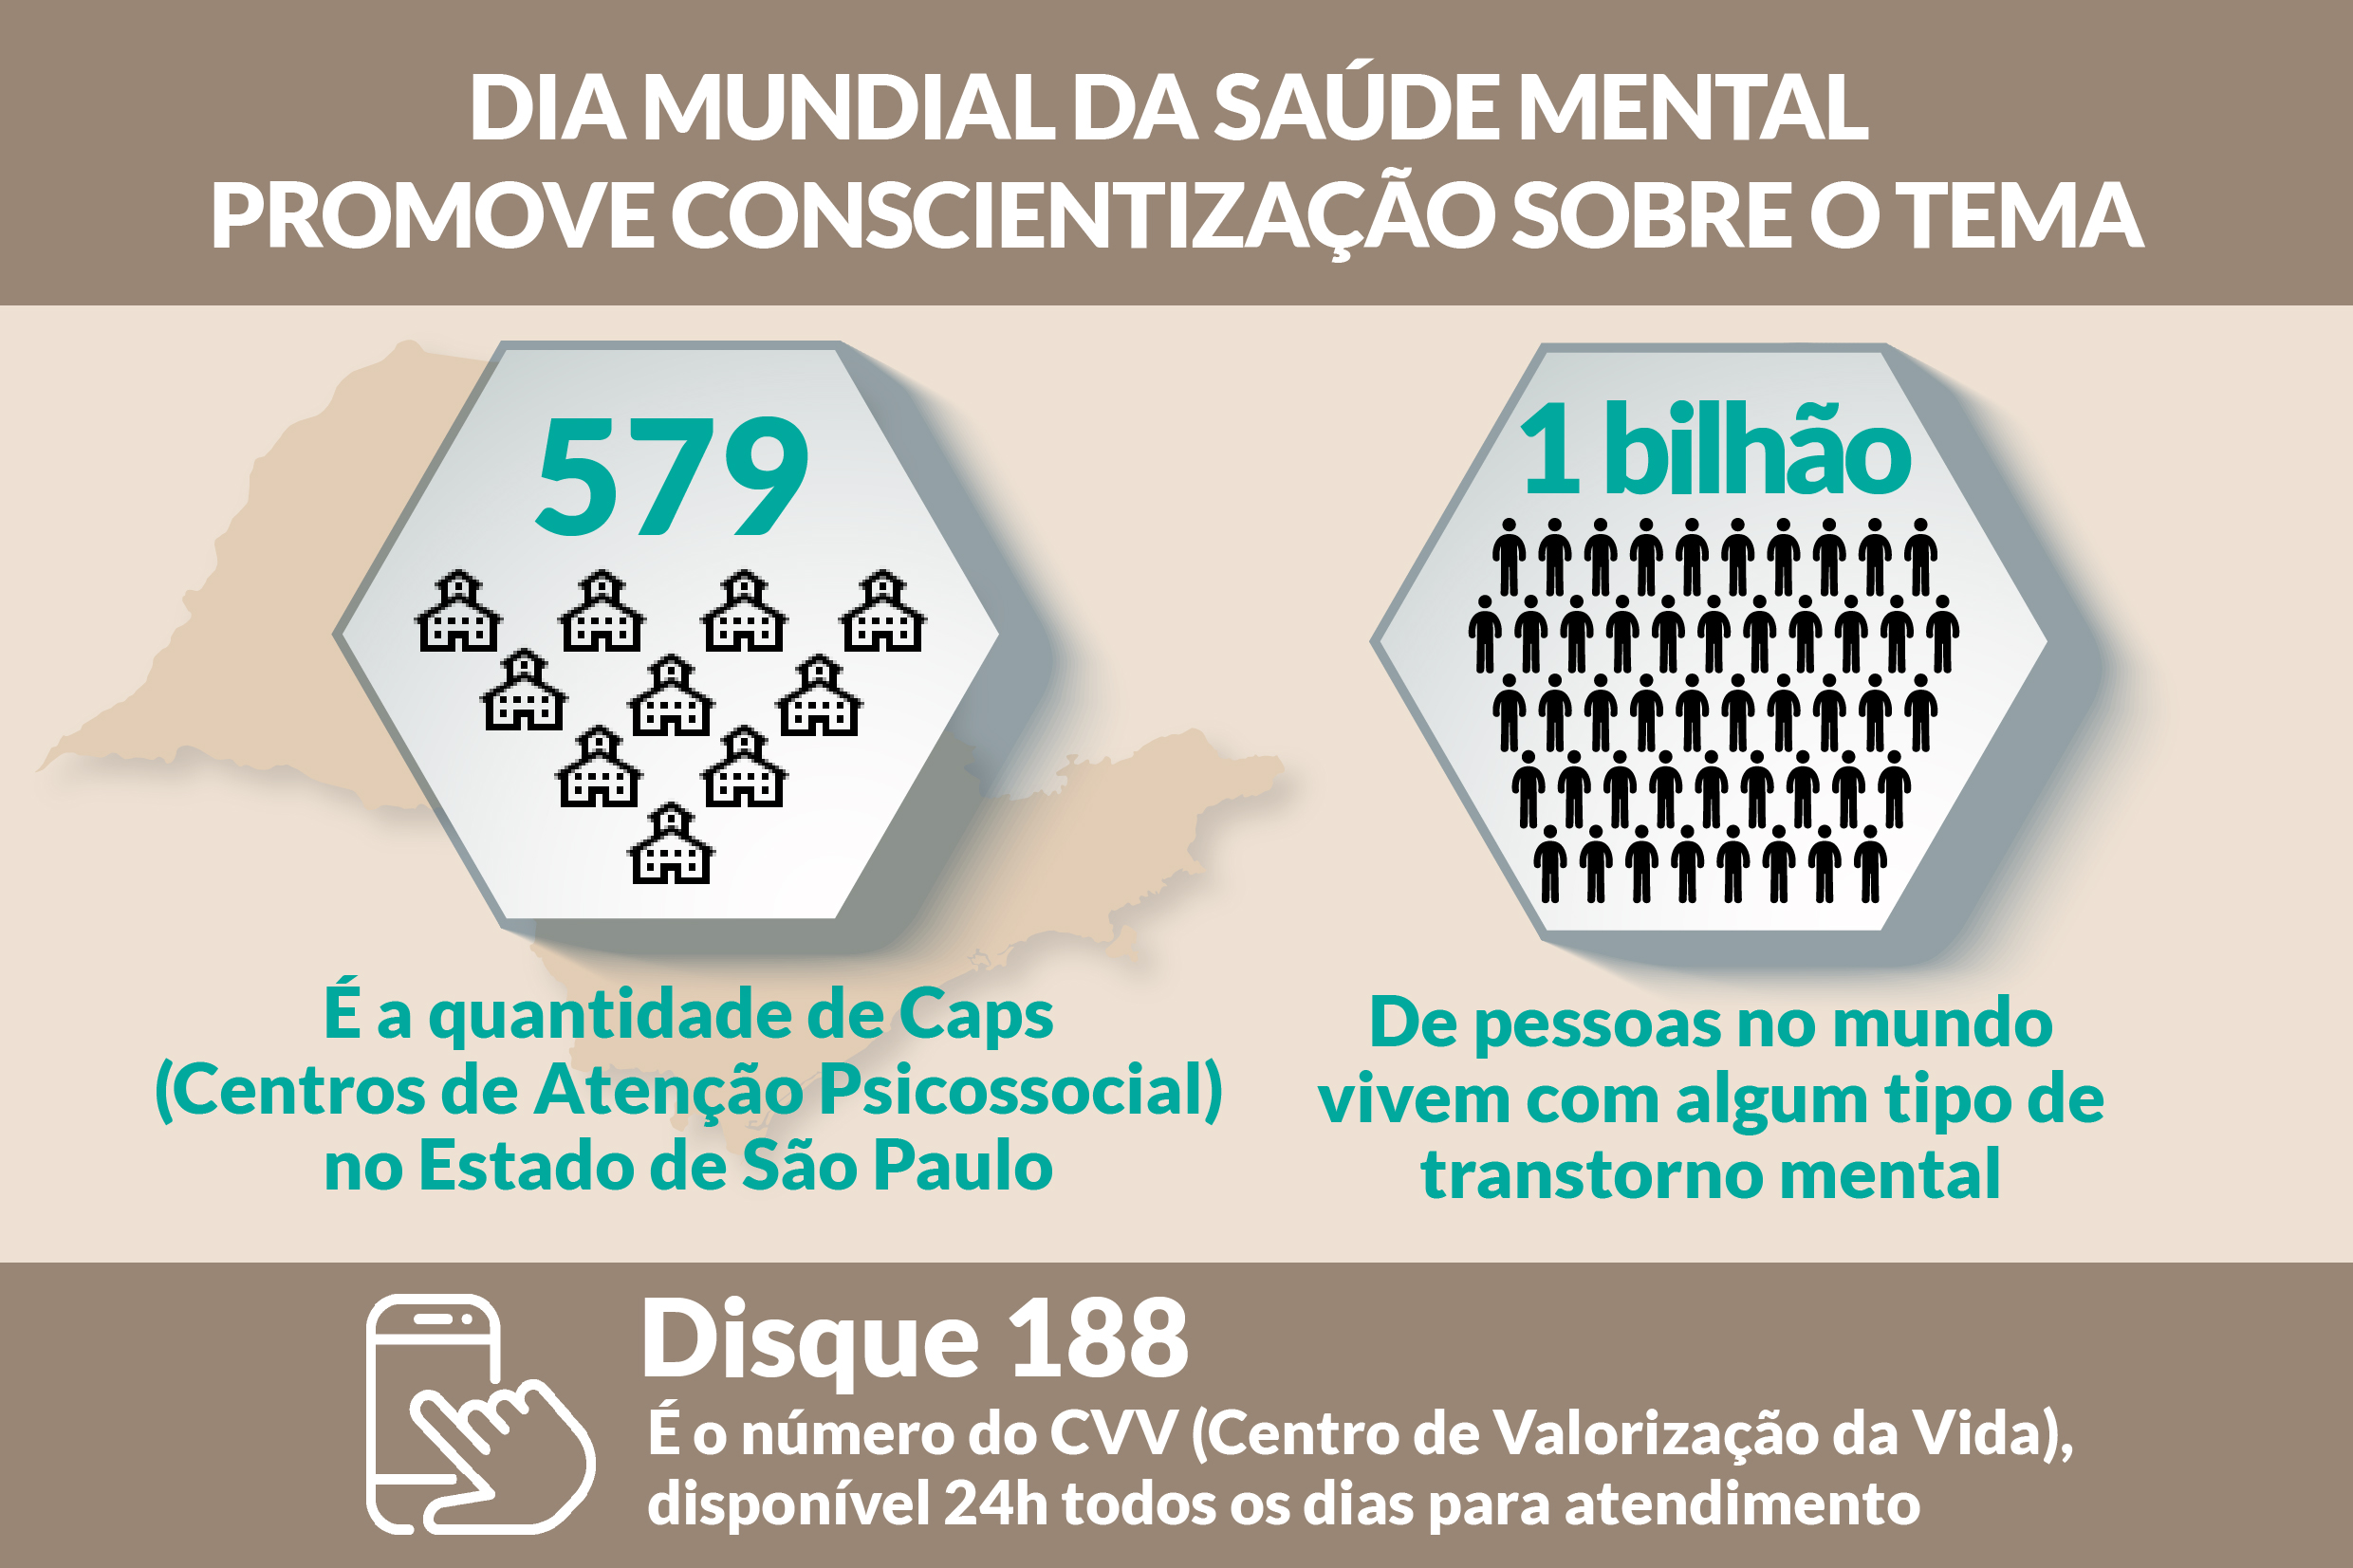 Infográfico<a style='float:right' href='https://www3.al.sp.gov.br/repositorio/noticia/N-10-2021/fg275824.jpg' target=_blank><img src='/_img/material-file-download-white.png' width='14px' alt='Clique para baixar a imagem'></a>